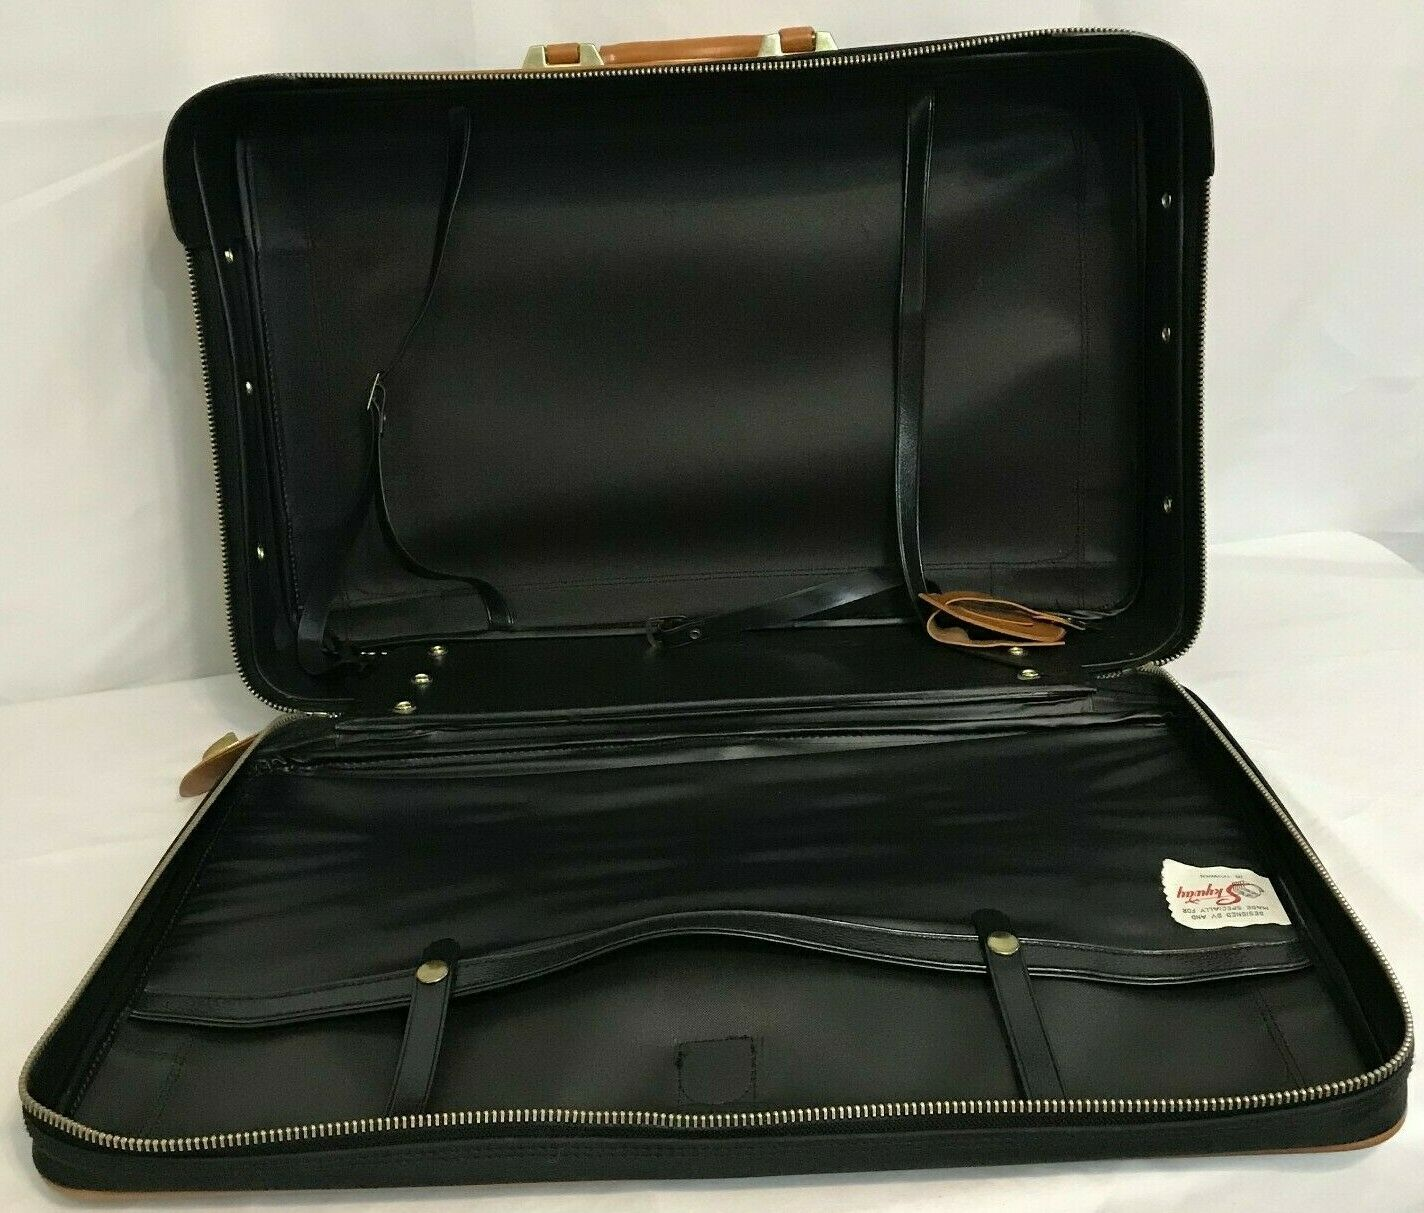 Skyway 747 Carry-on Suitcase Blue Brown Hartmann Luggage 1980s 22 x17 x7  - $30.00